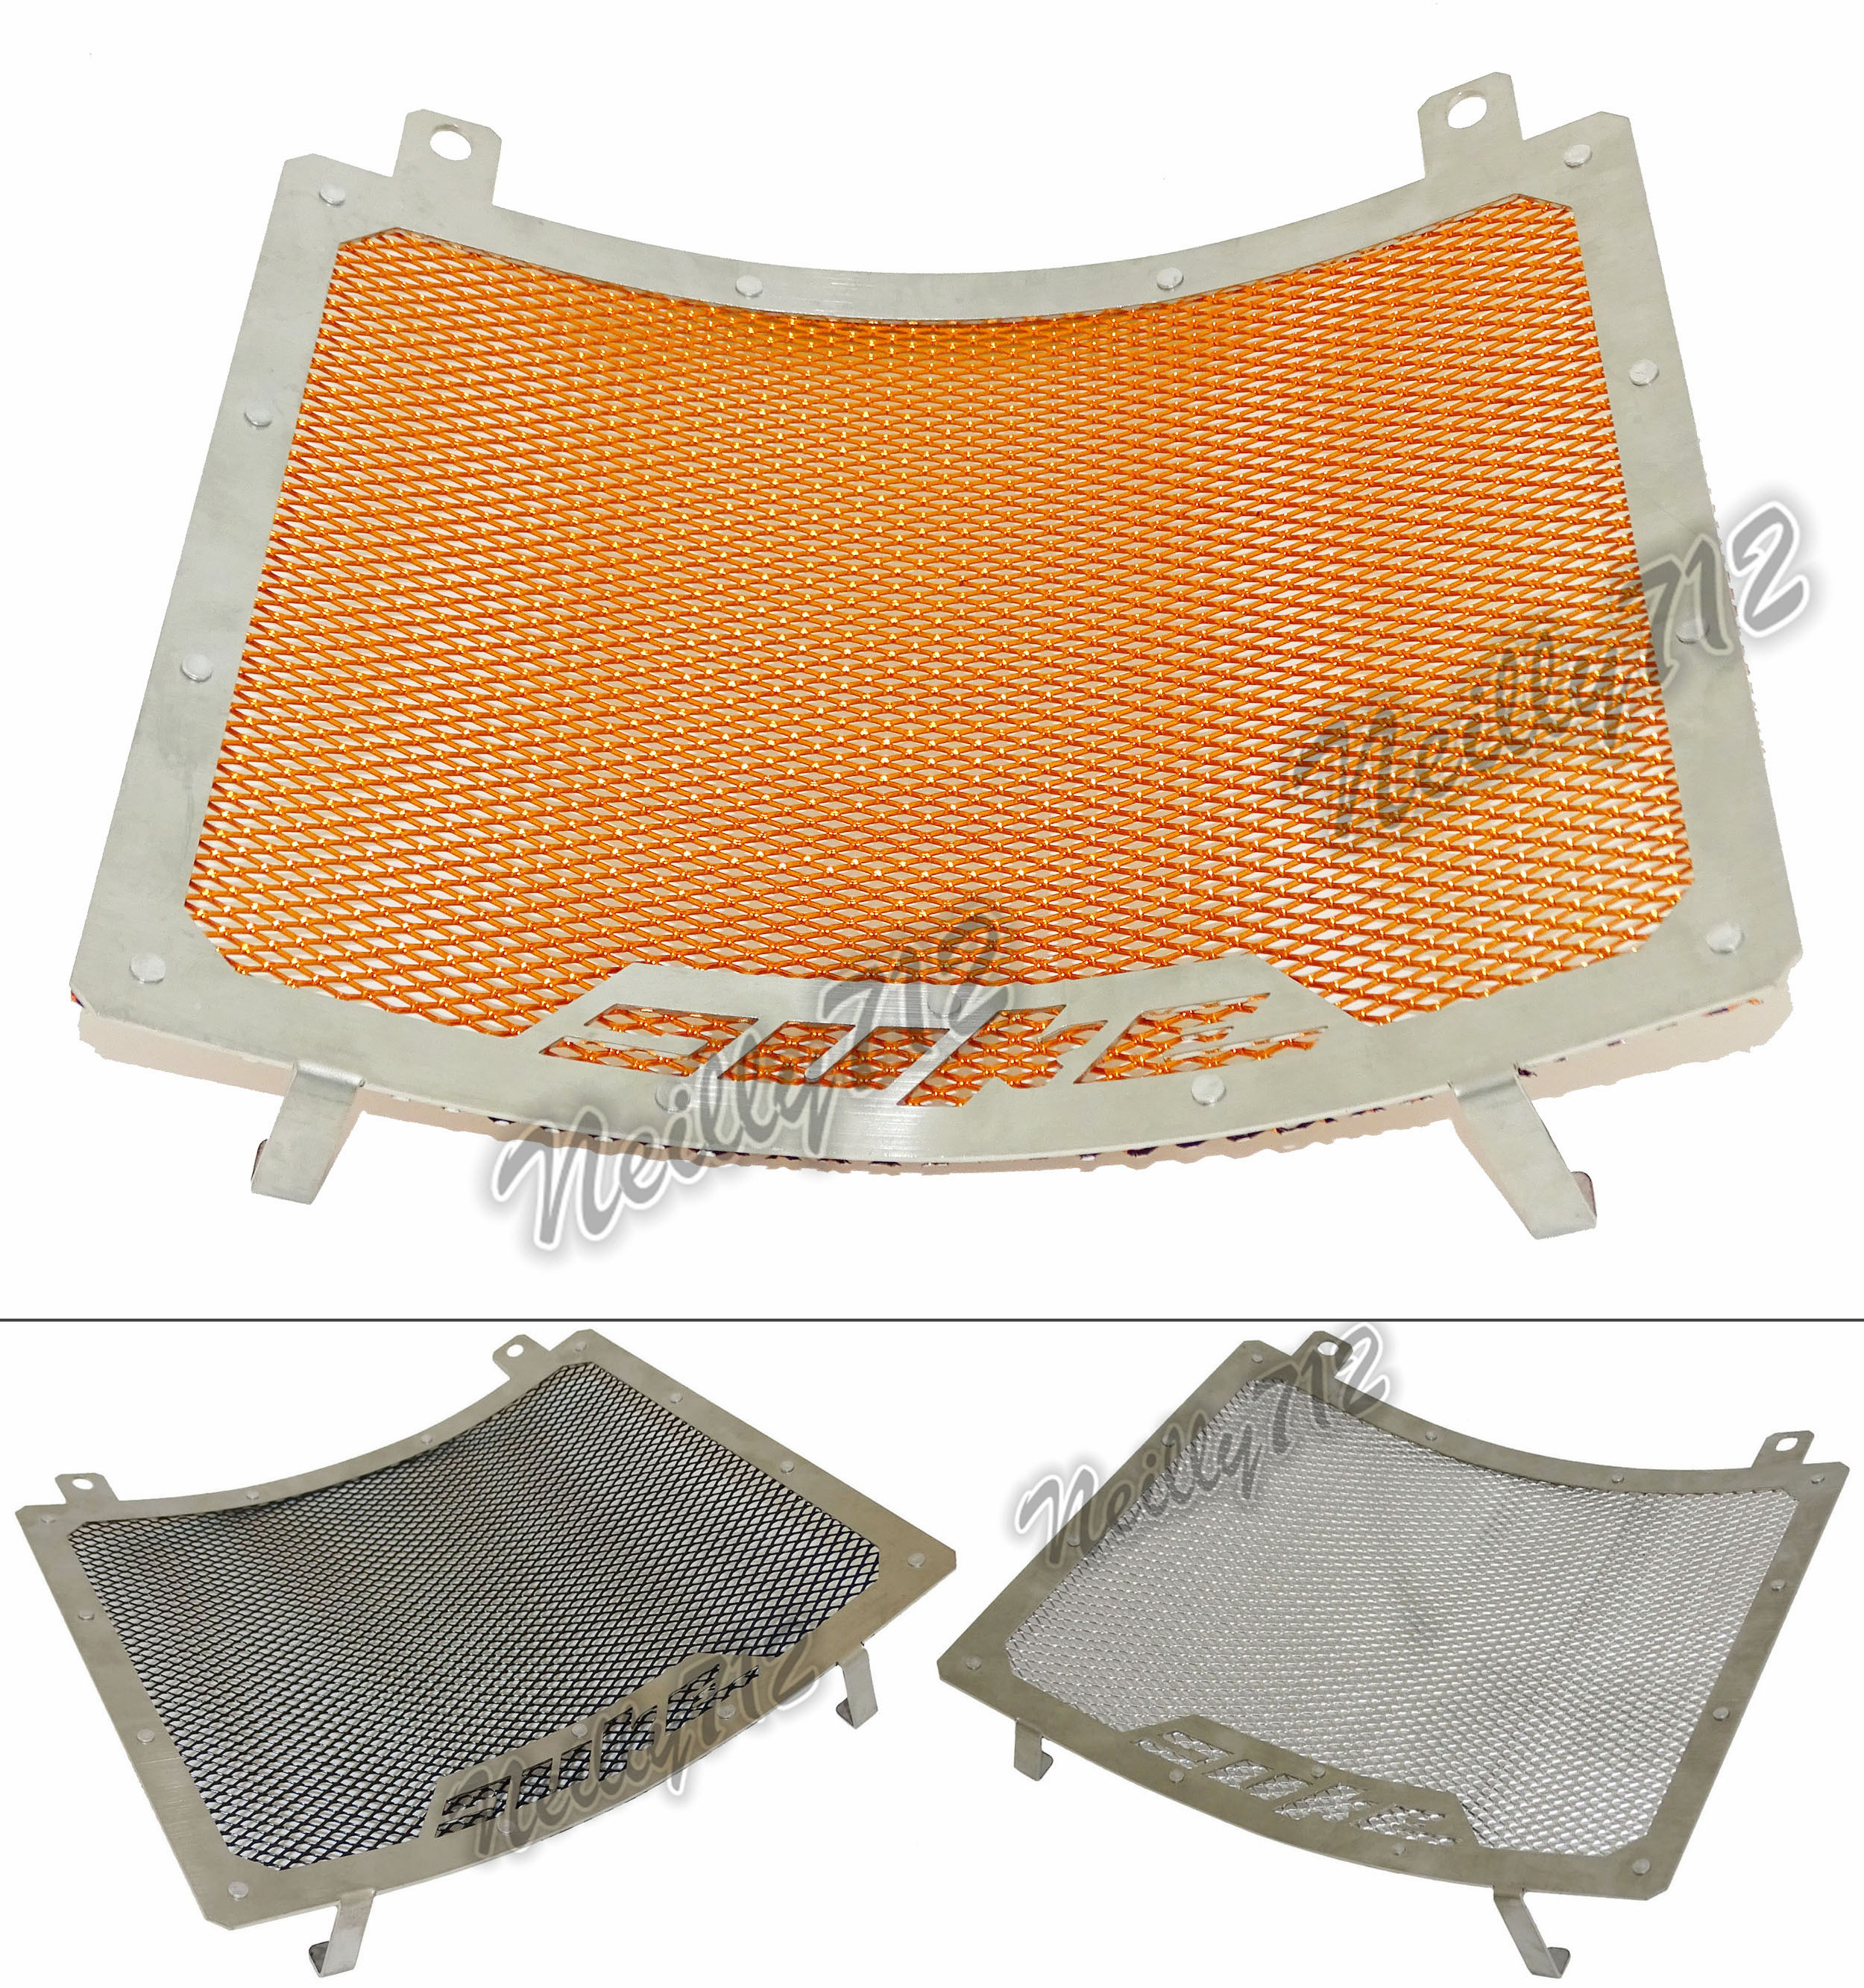 Motorcycle Radiator Protective Cover Grill Guard Grille Protector For KTM Duke 690 2012 2013 2014 2015 2016 2017 radiator protective cover grill guard grille protector for suzuki hayabusa gsxr1300 2008 2009 2010 2011 2012 2013 2014 2015 2017